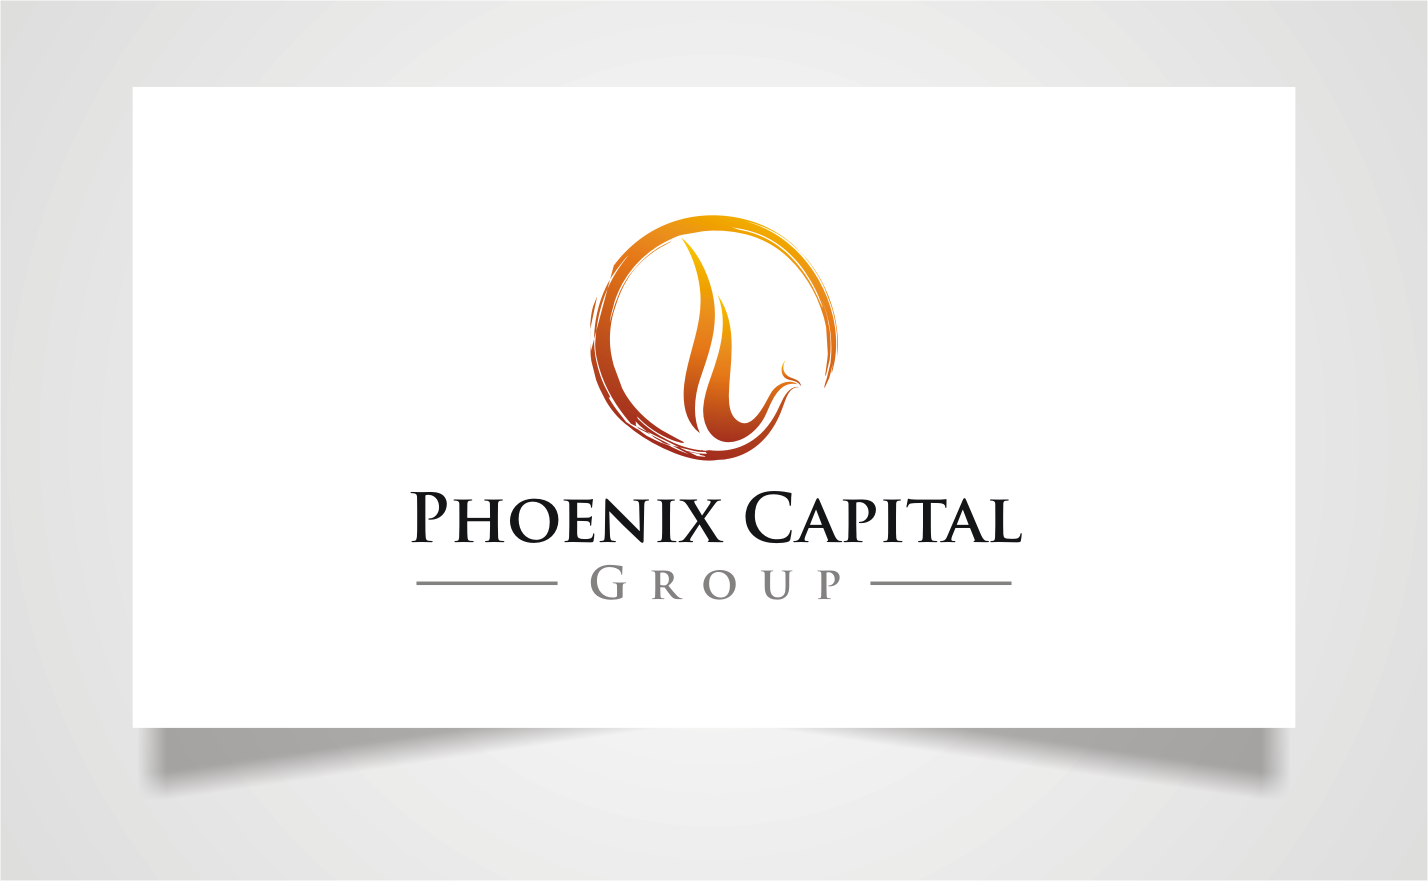 New logo wanted for Phoenix Capital Group